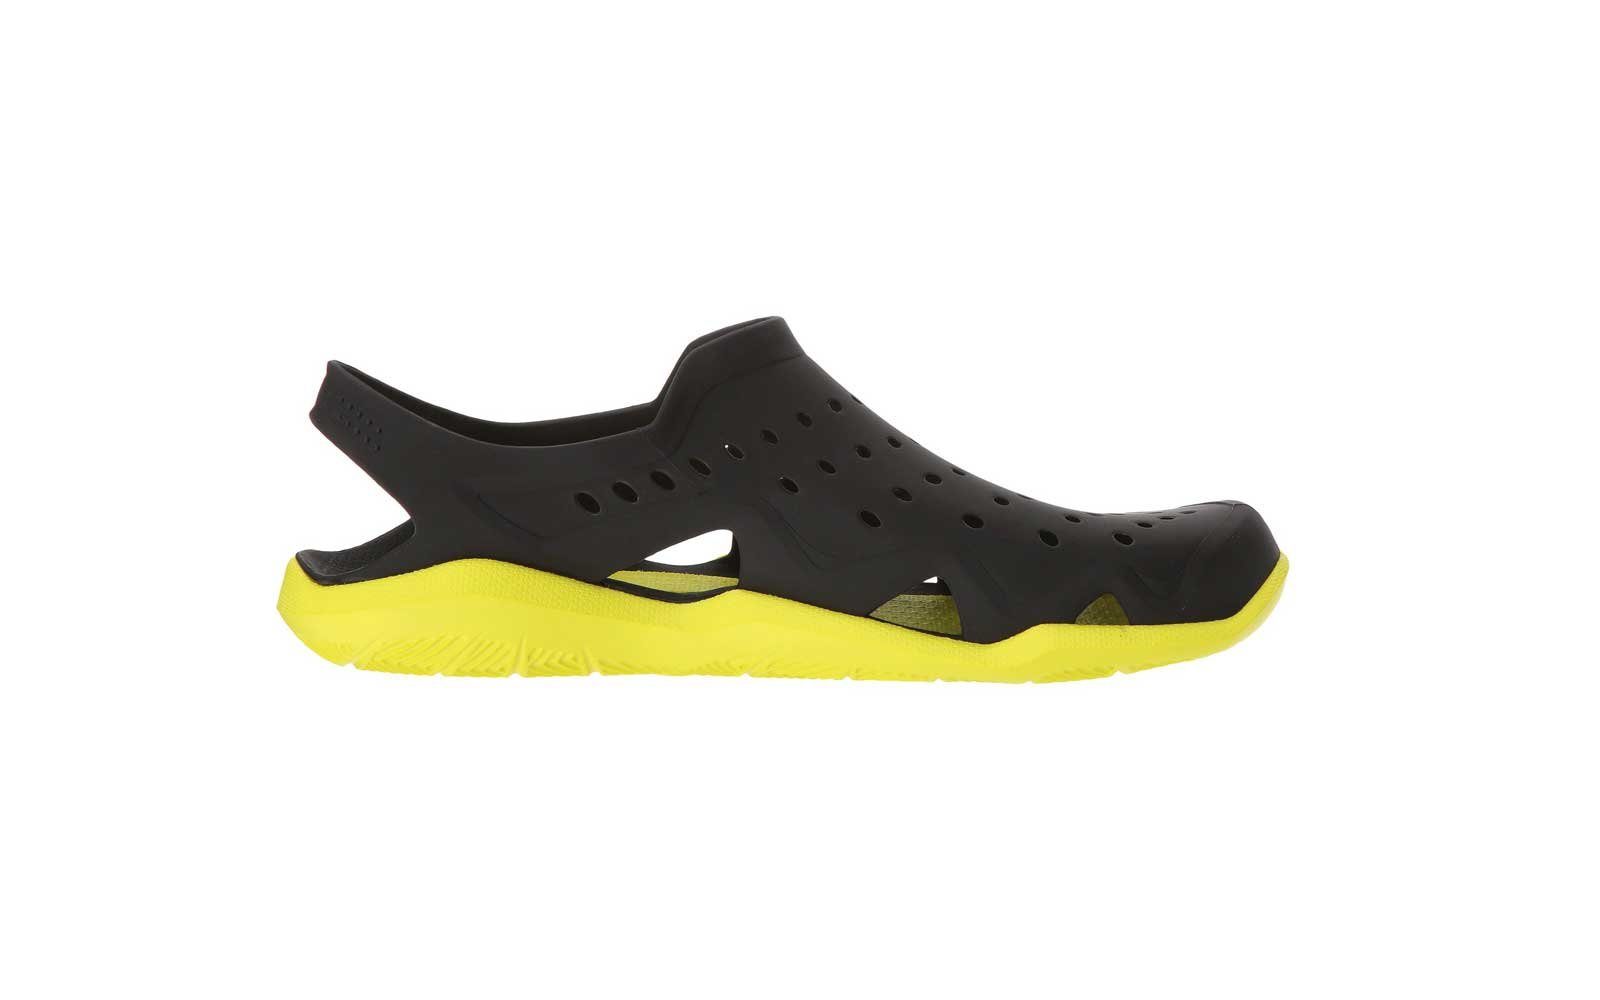 the best attitude 4c8aa b6168 Crocs  Swiftwater Wave  Water Shoes